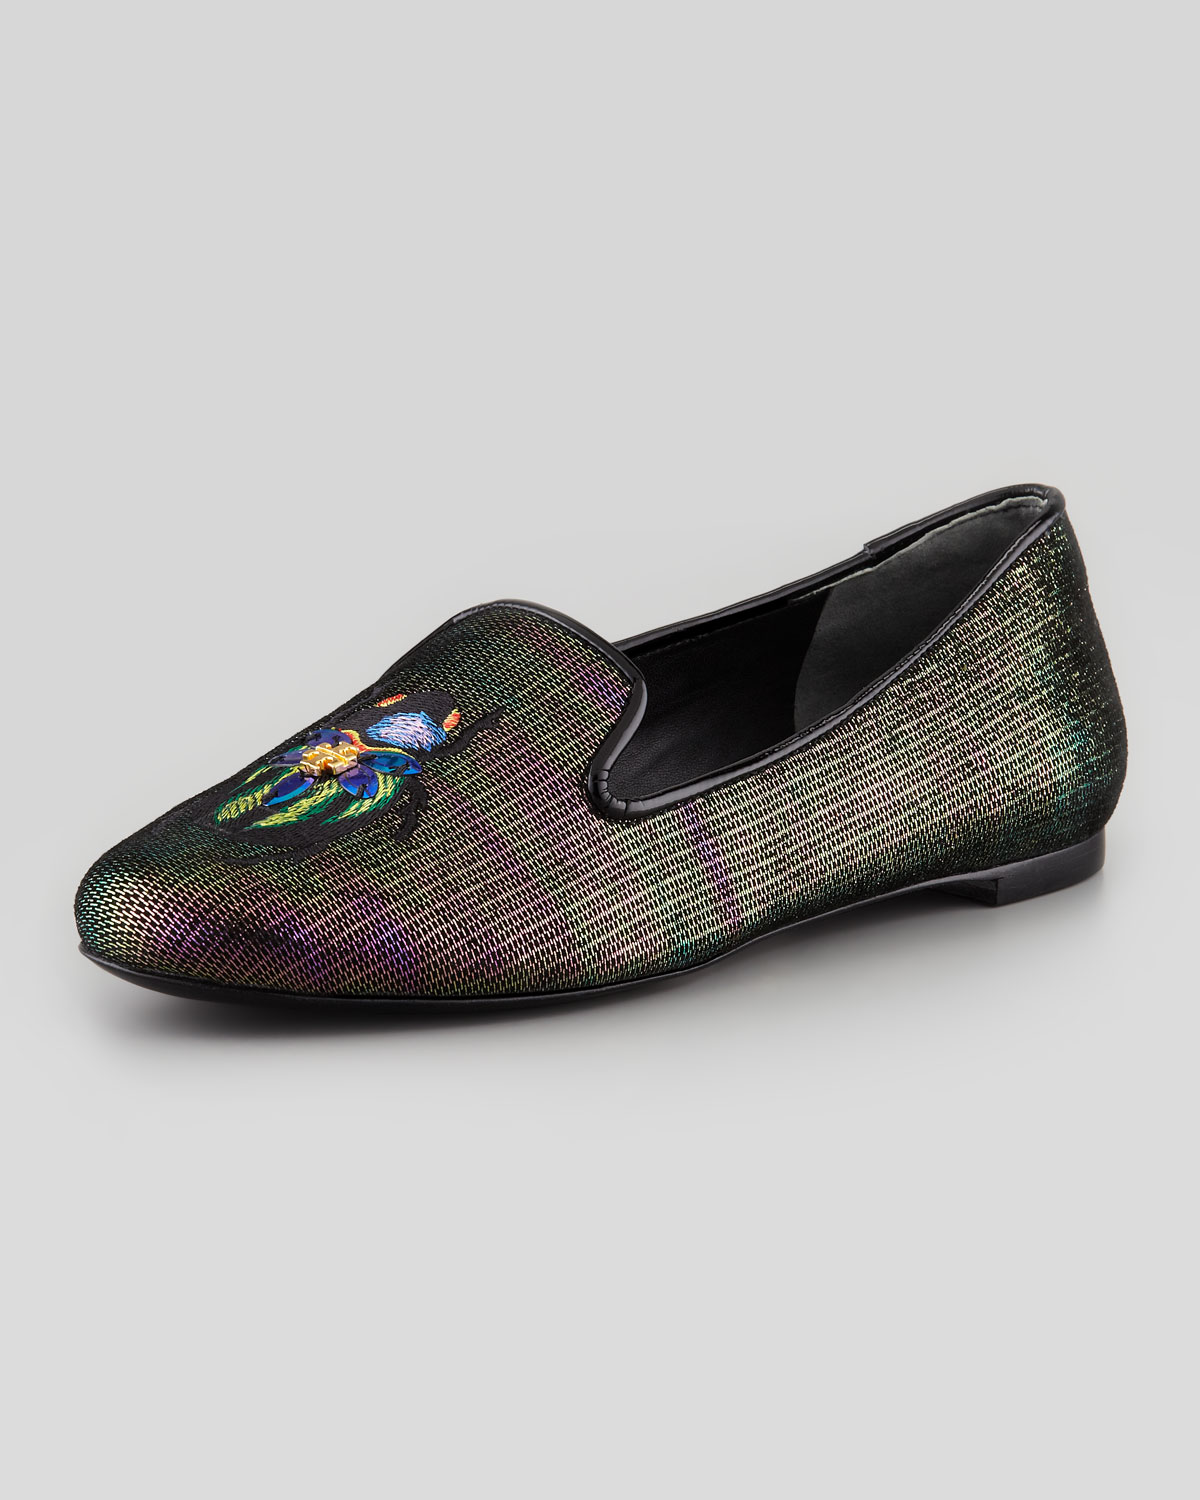 Lyst Tory Burch Cailyn Holographic Beetle Smoking